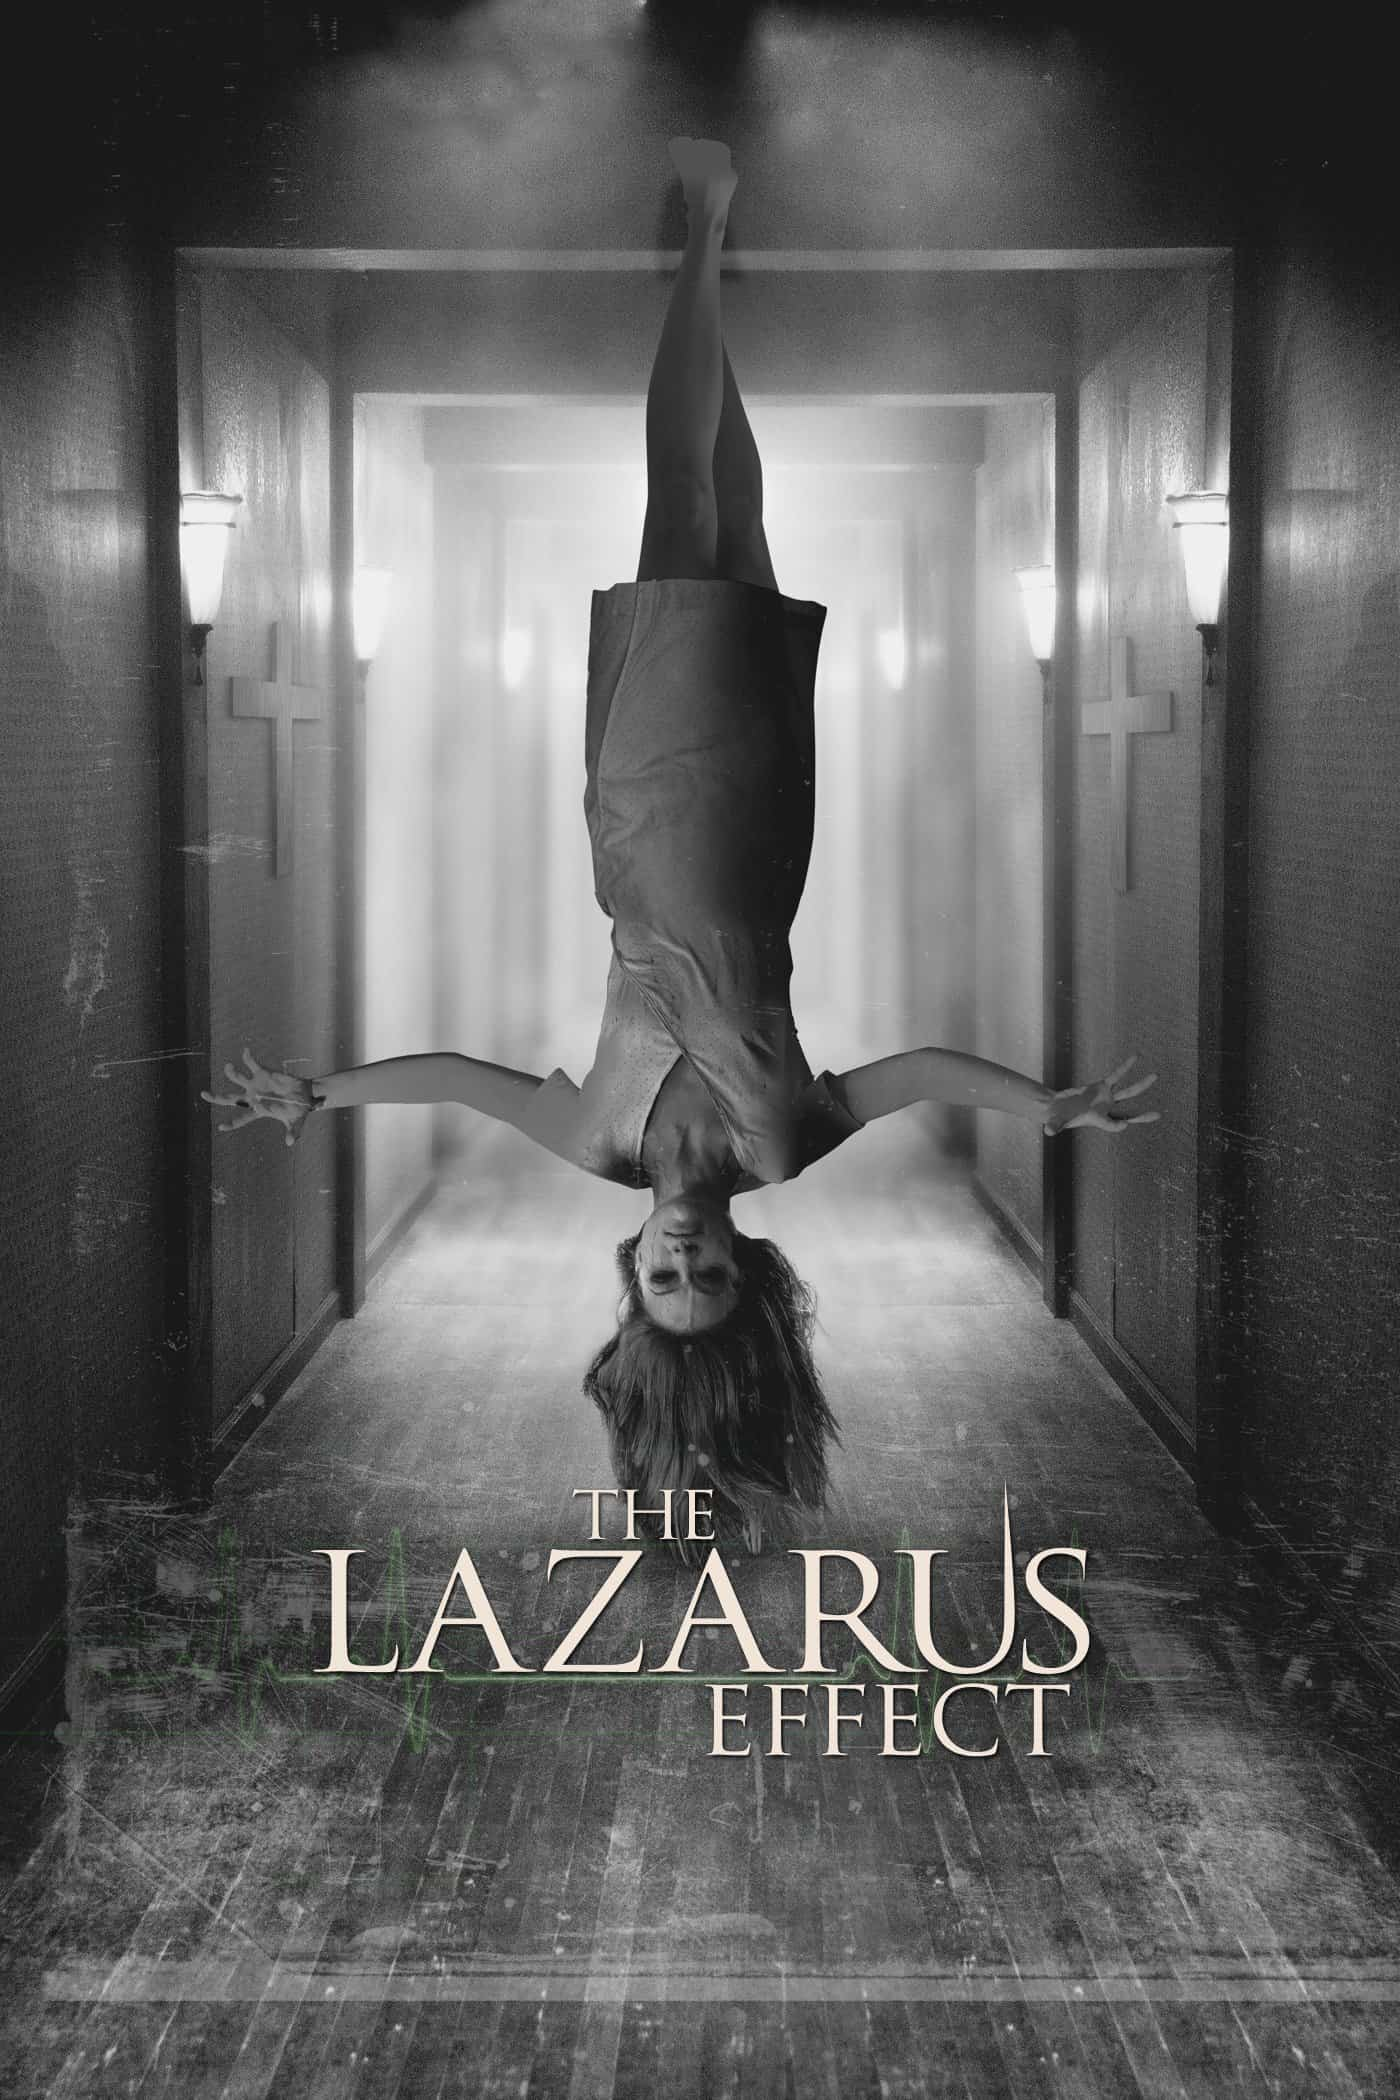 The Lazarus Effect, 2015